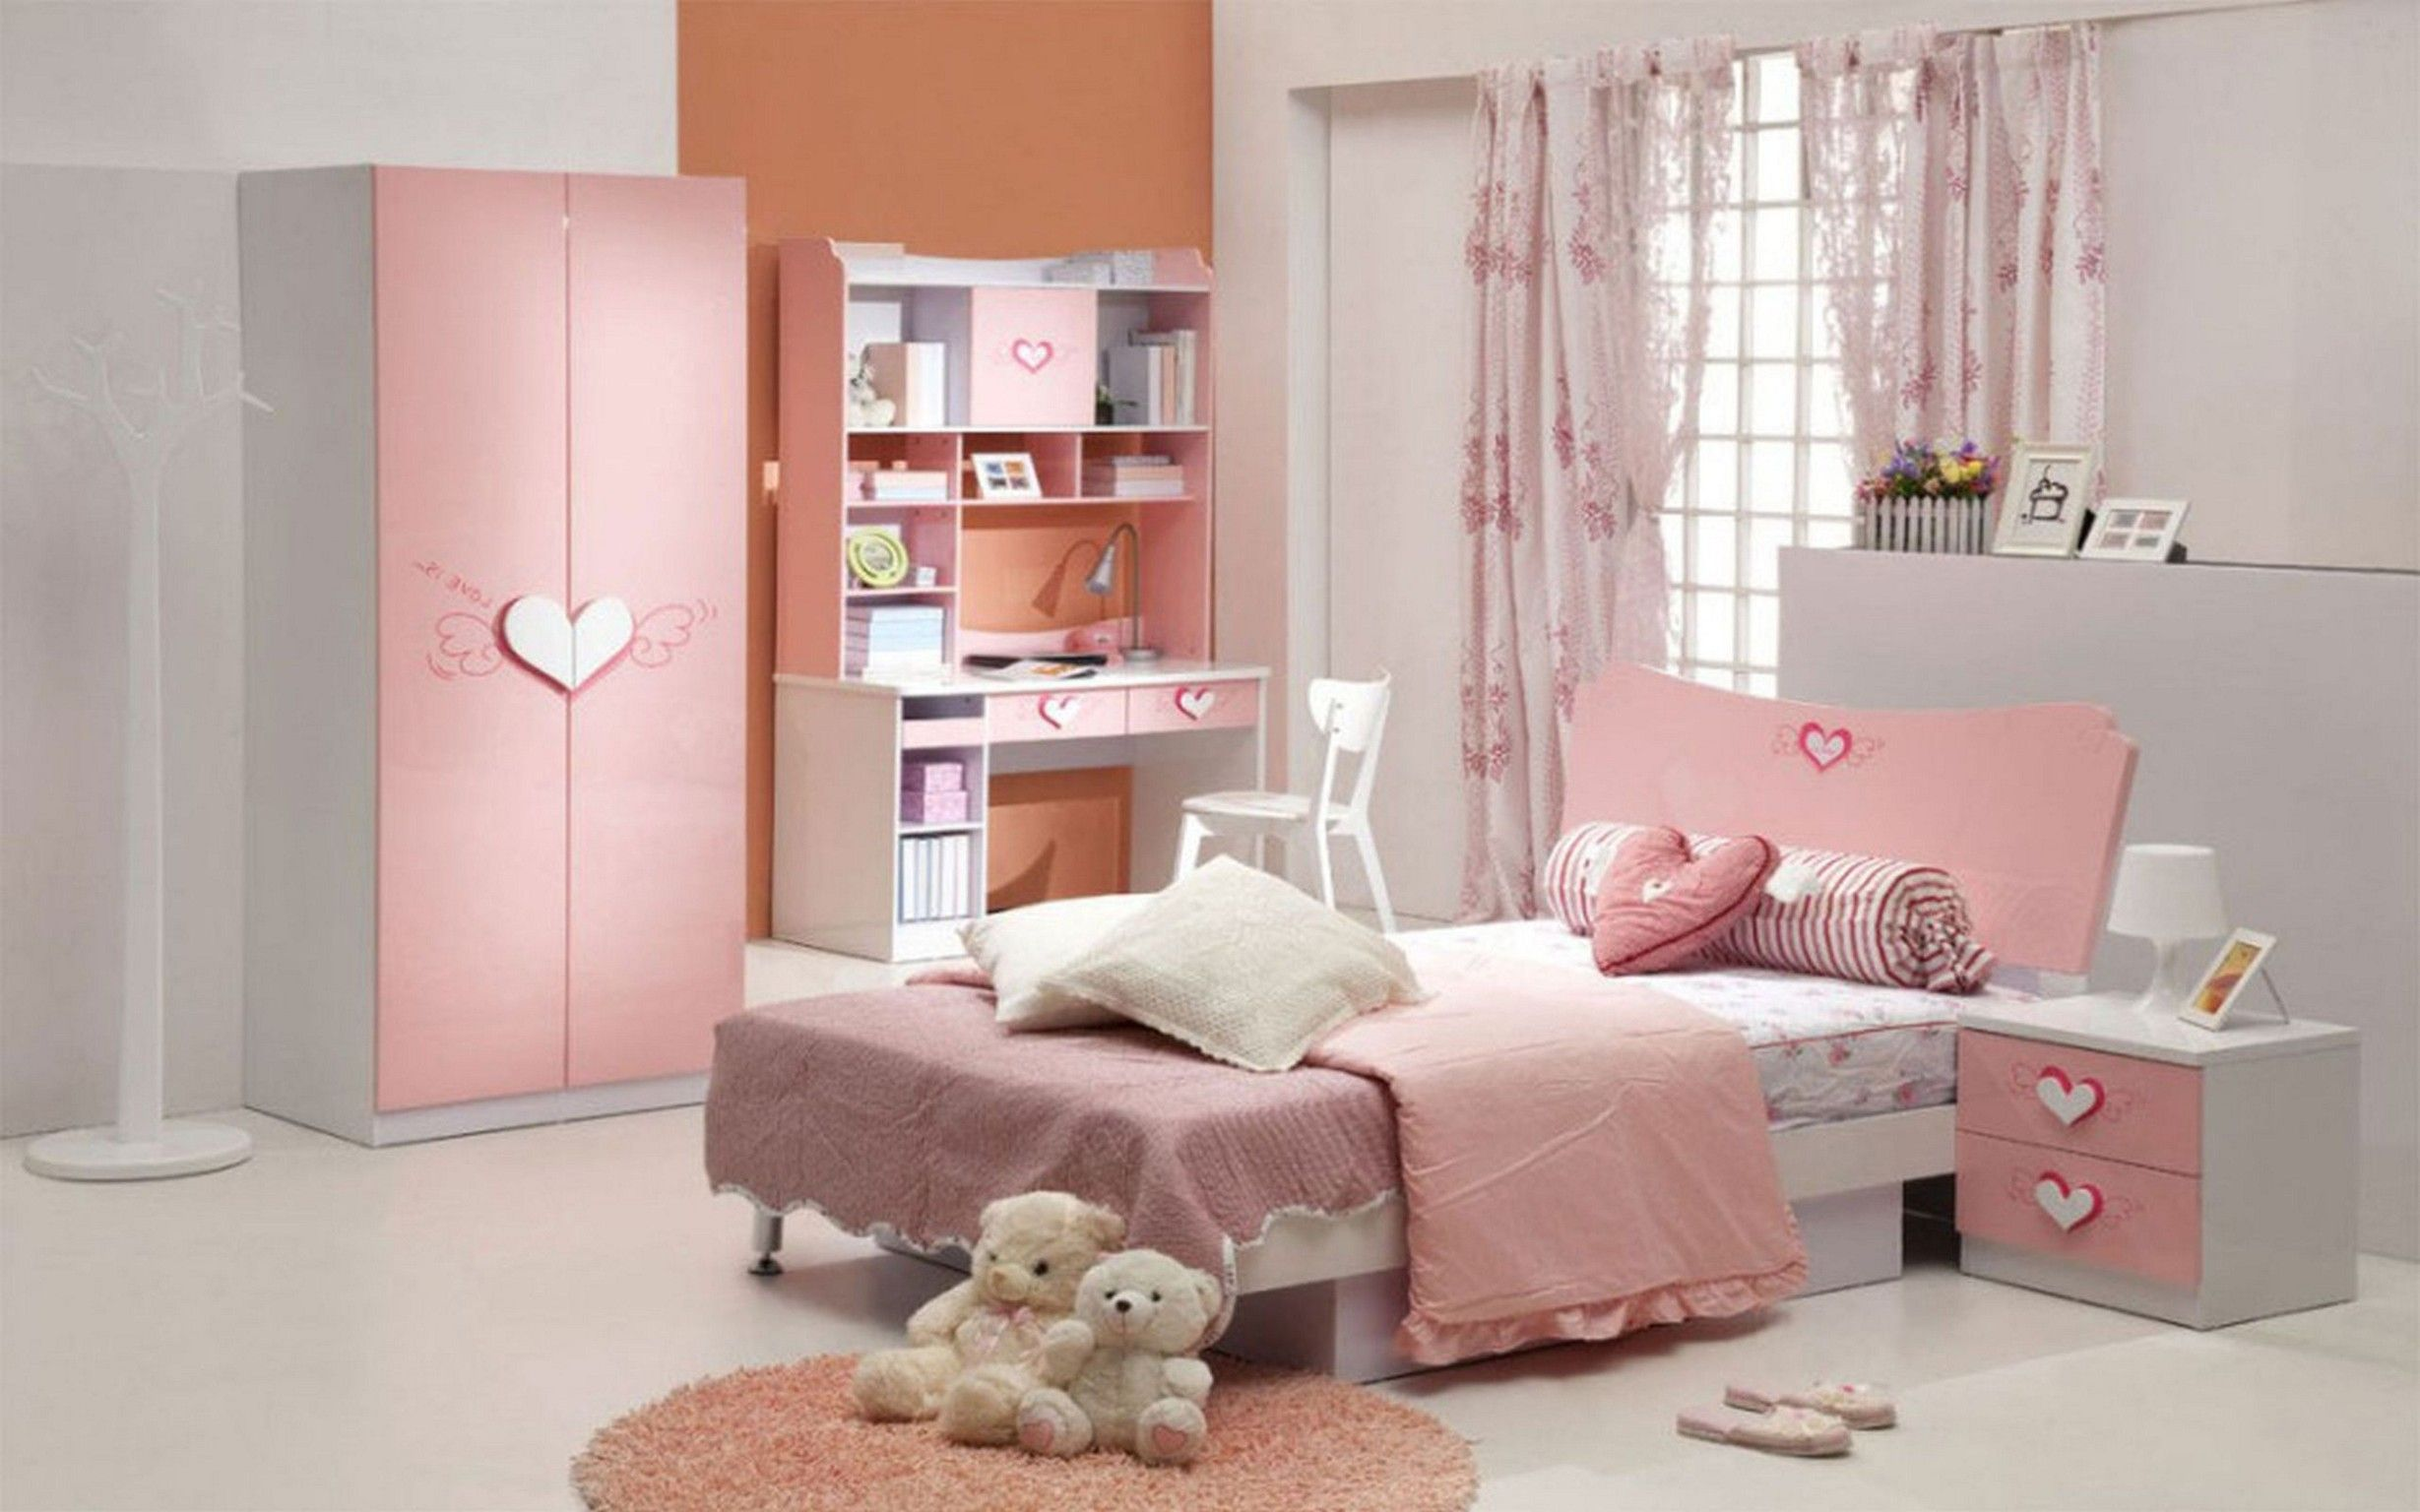 Bon Looking For Creative And Styish Pink Bedroom Design Ideas For Girls. Find  The Pretty Pink Bedroom Designs For Teenage Girls 2016 For Inspiration.